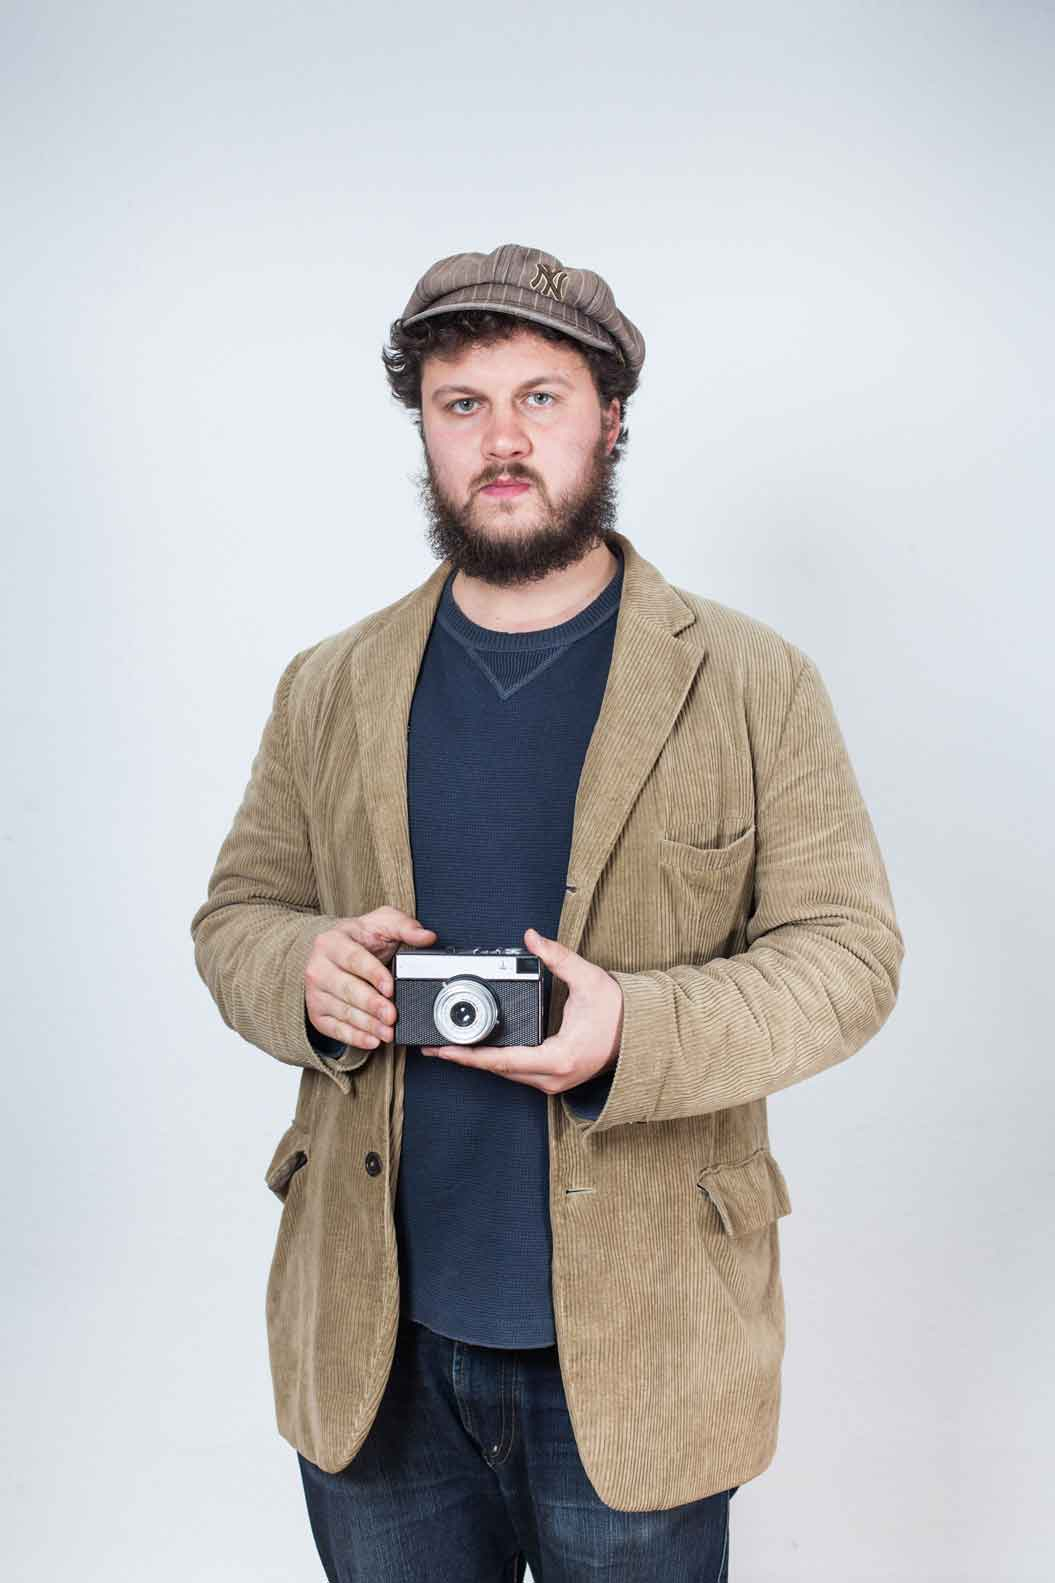 A young man with a cap and beard in a brown corduroy jacket is holding an analogue camera in his hands.